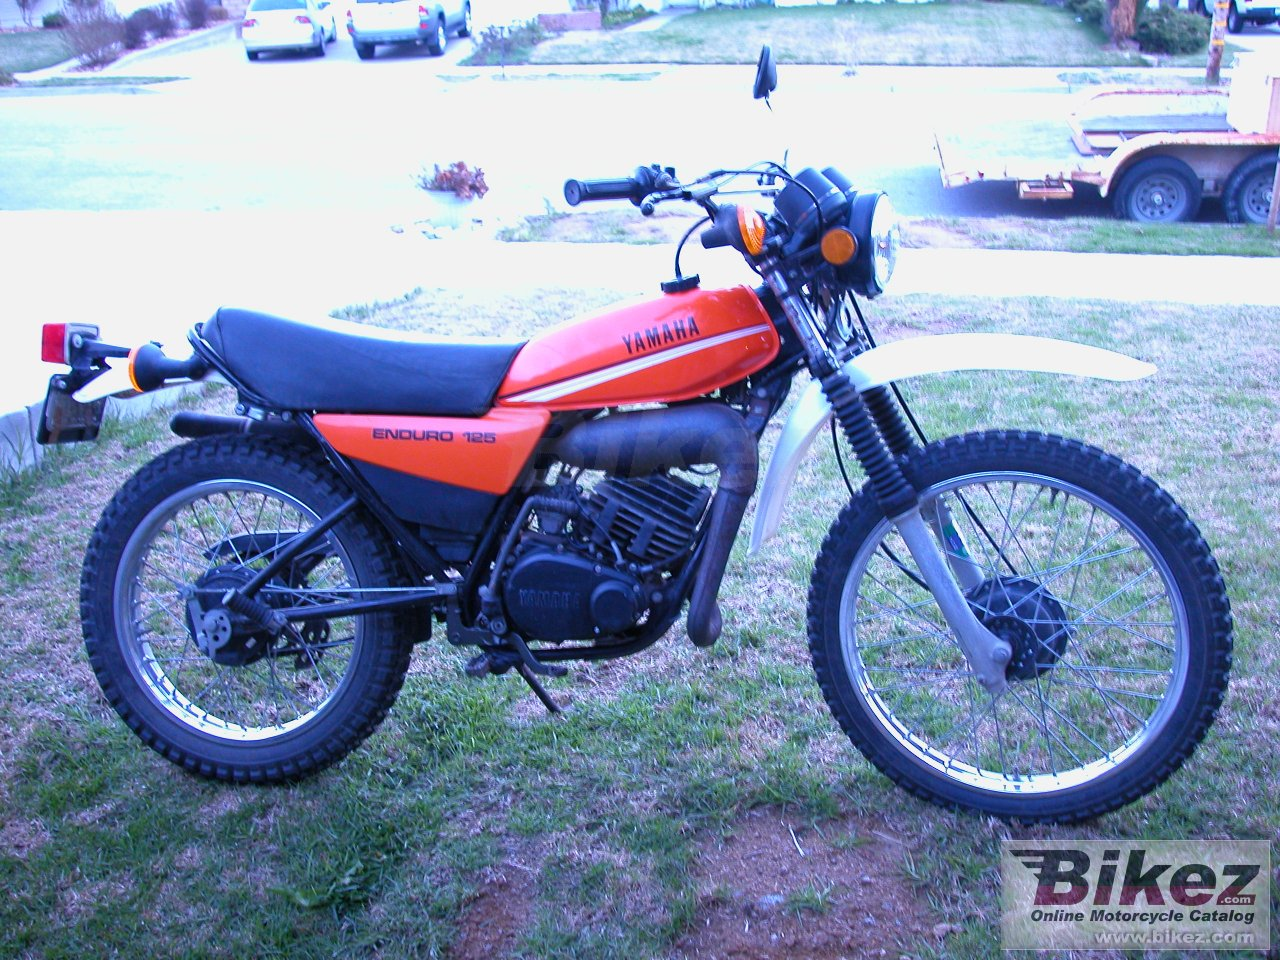 Big nduro dt 125 e picture and wallpaper from Bikez.com